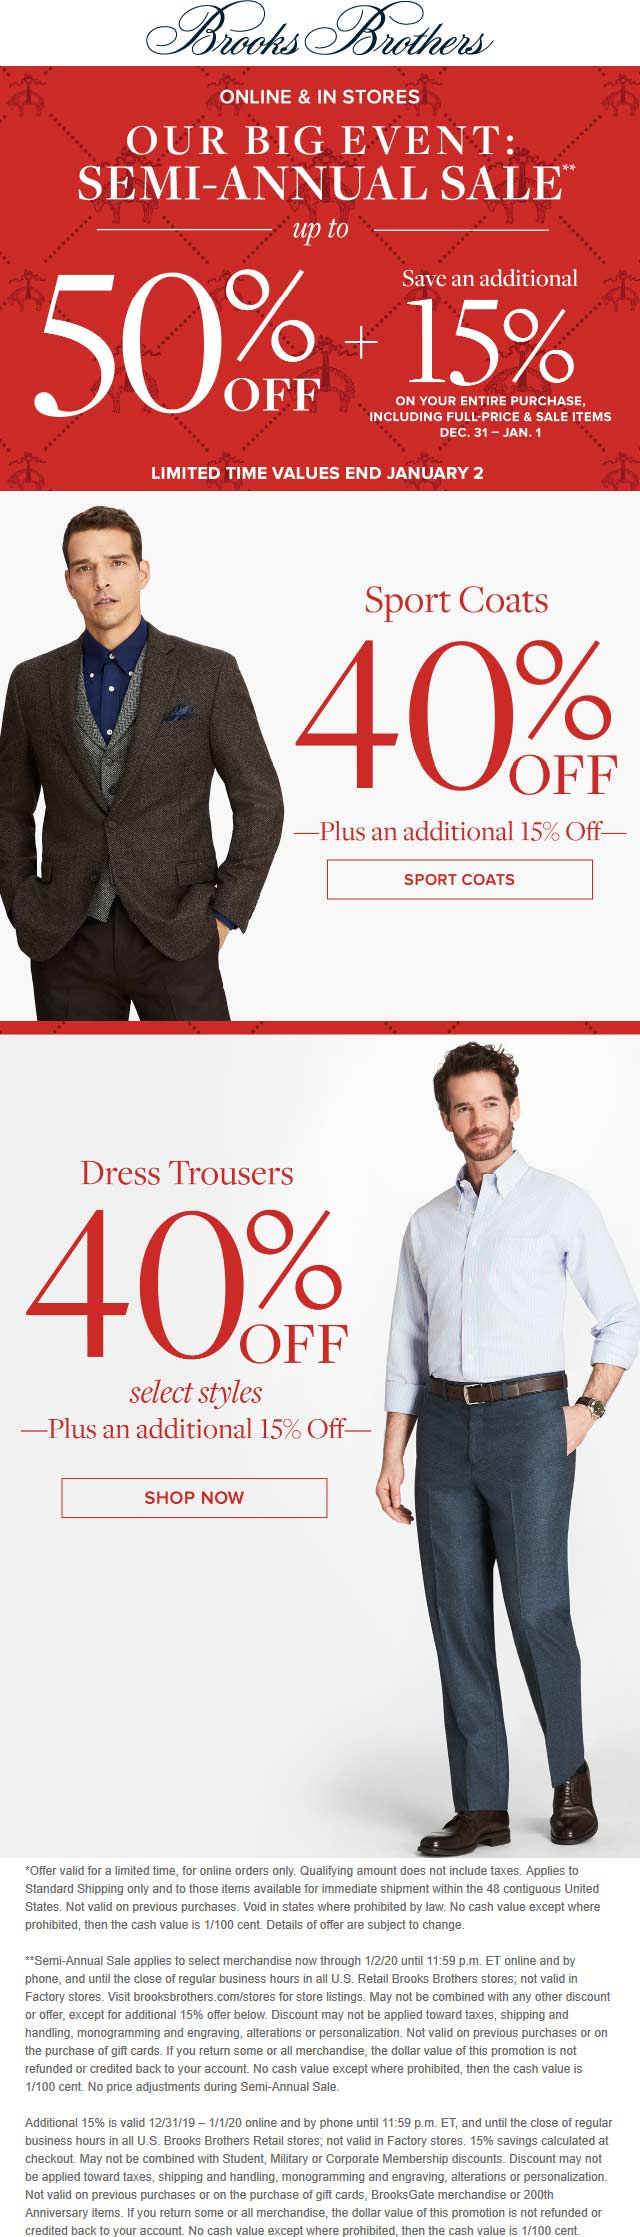 Brooks Brothers coupons & promo code for [November 2020]